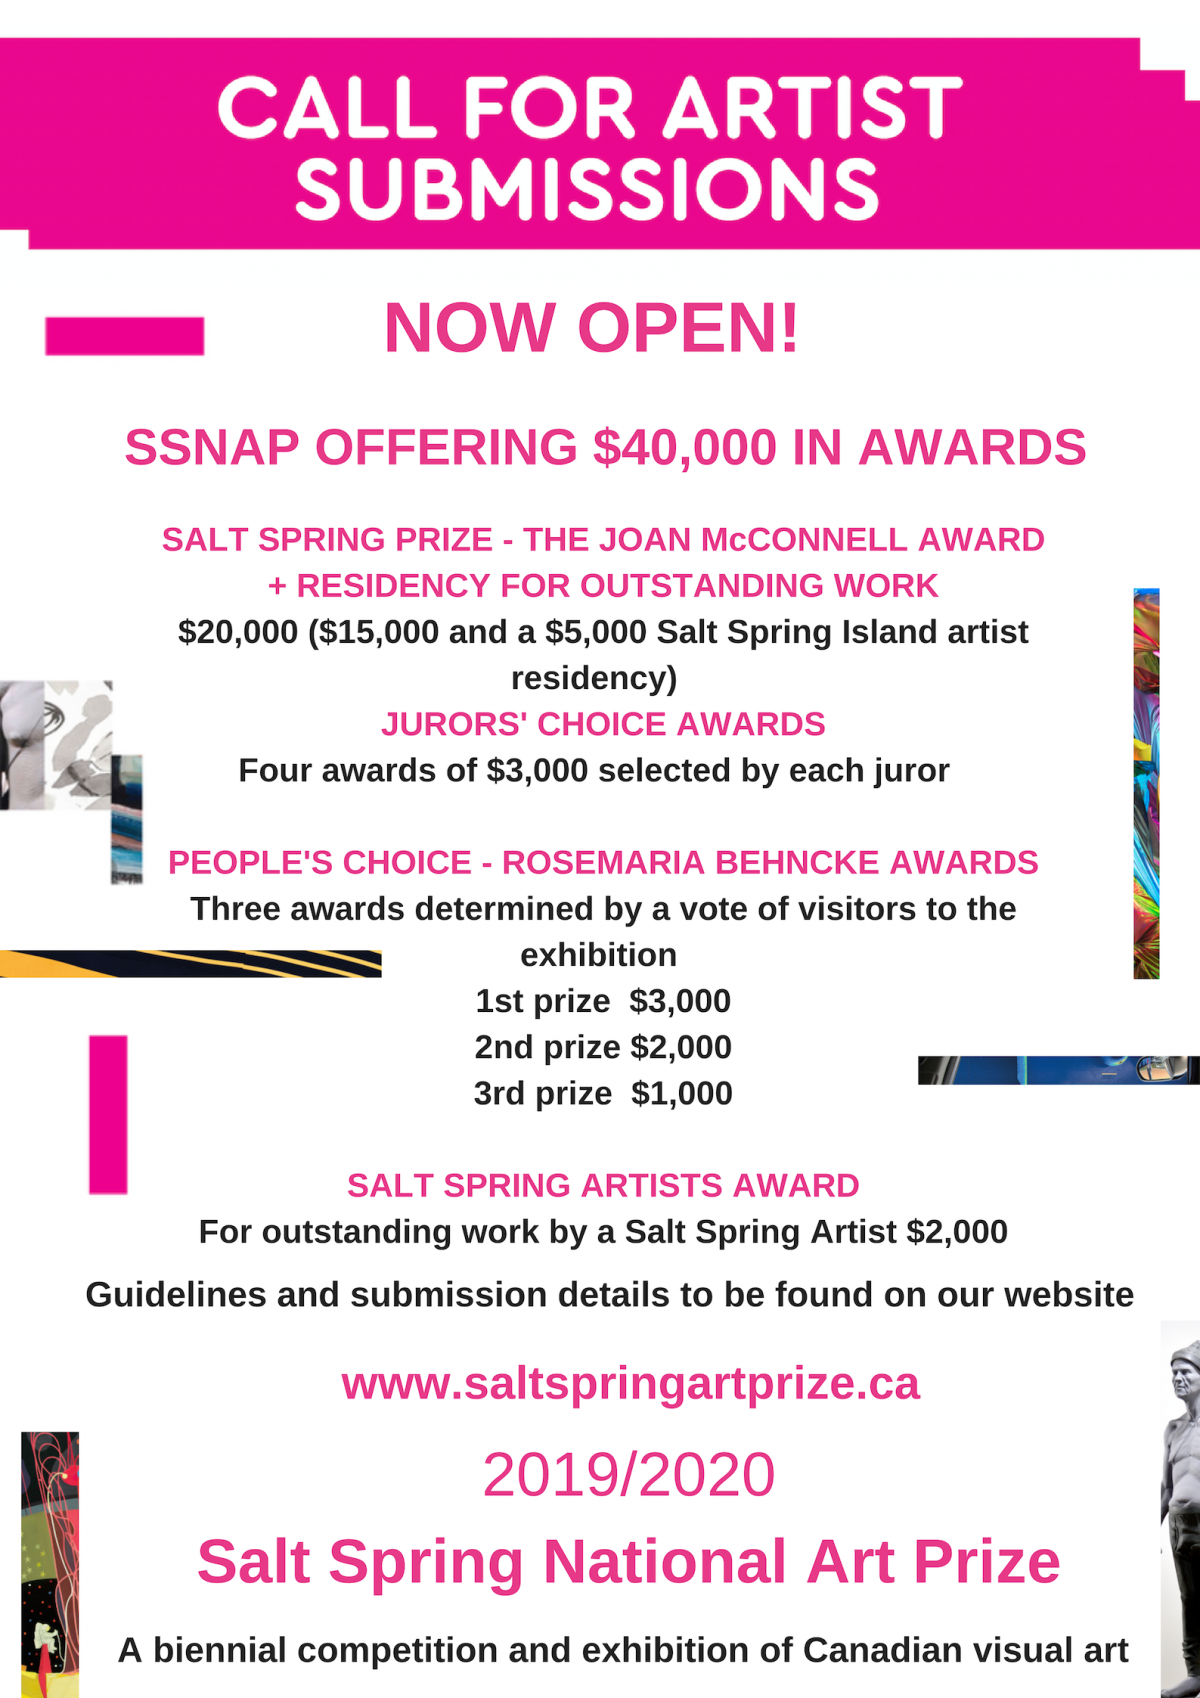 Call for artist submissions now open - Salt Spring Art Prize